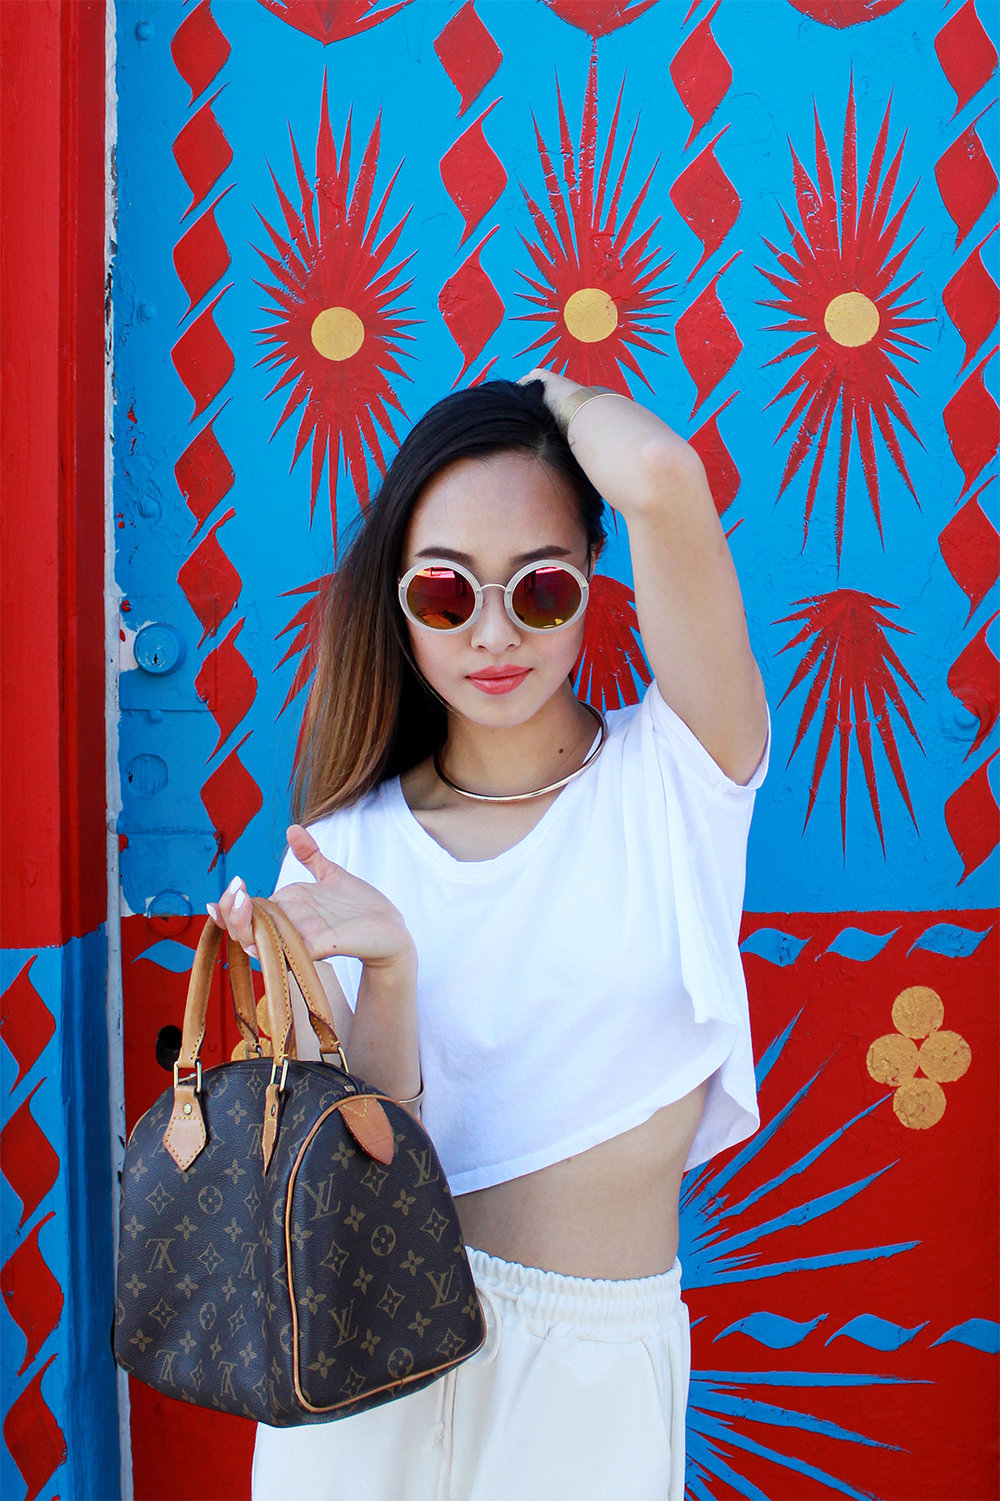 Stylenanda sunnies, Zara crop top and necklace, Madewell bracelets, LV Speedy 25